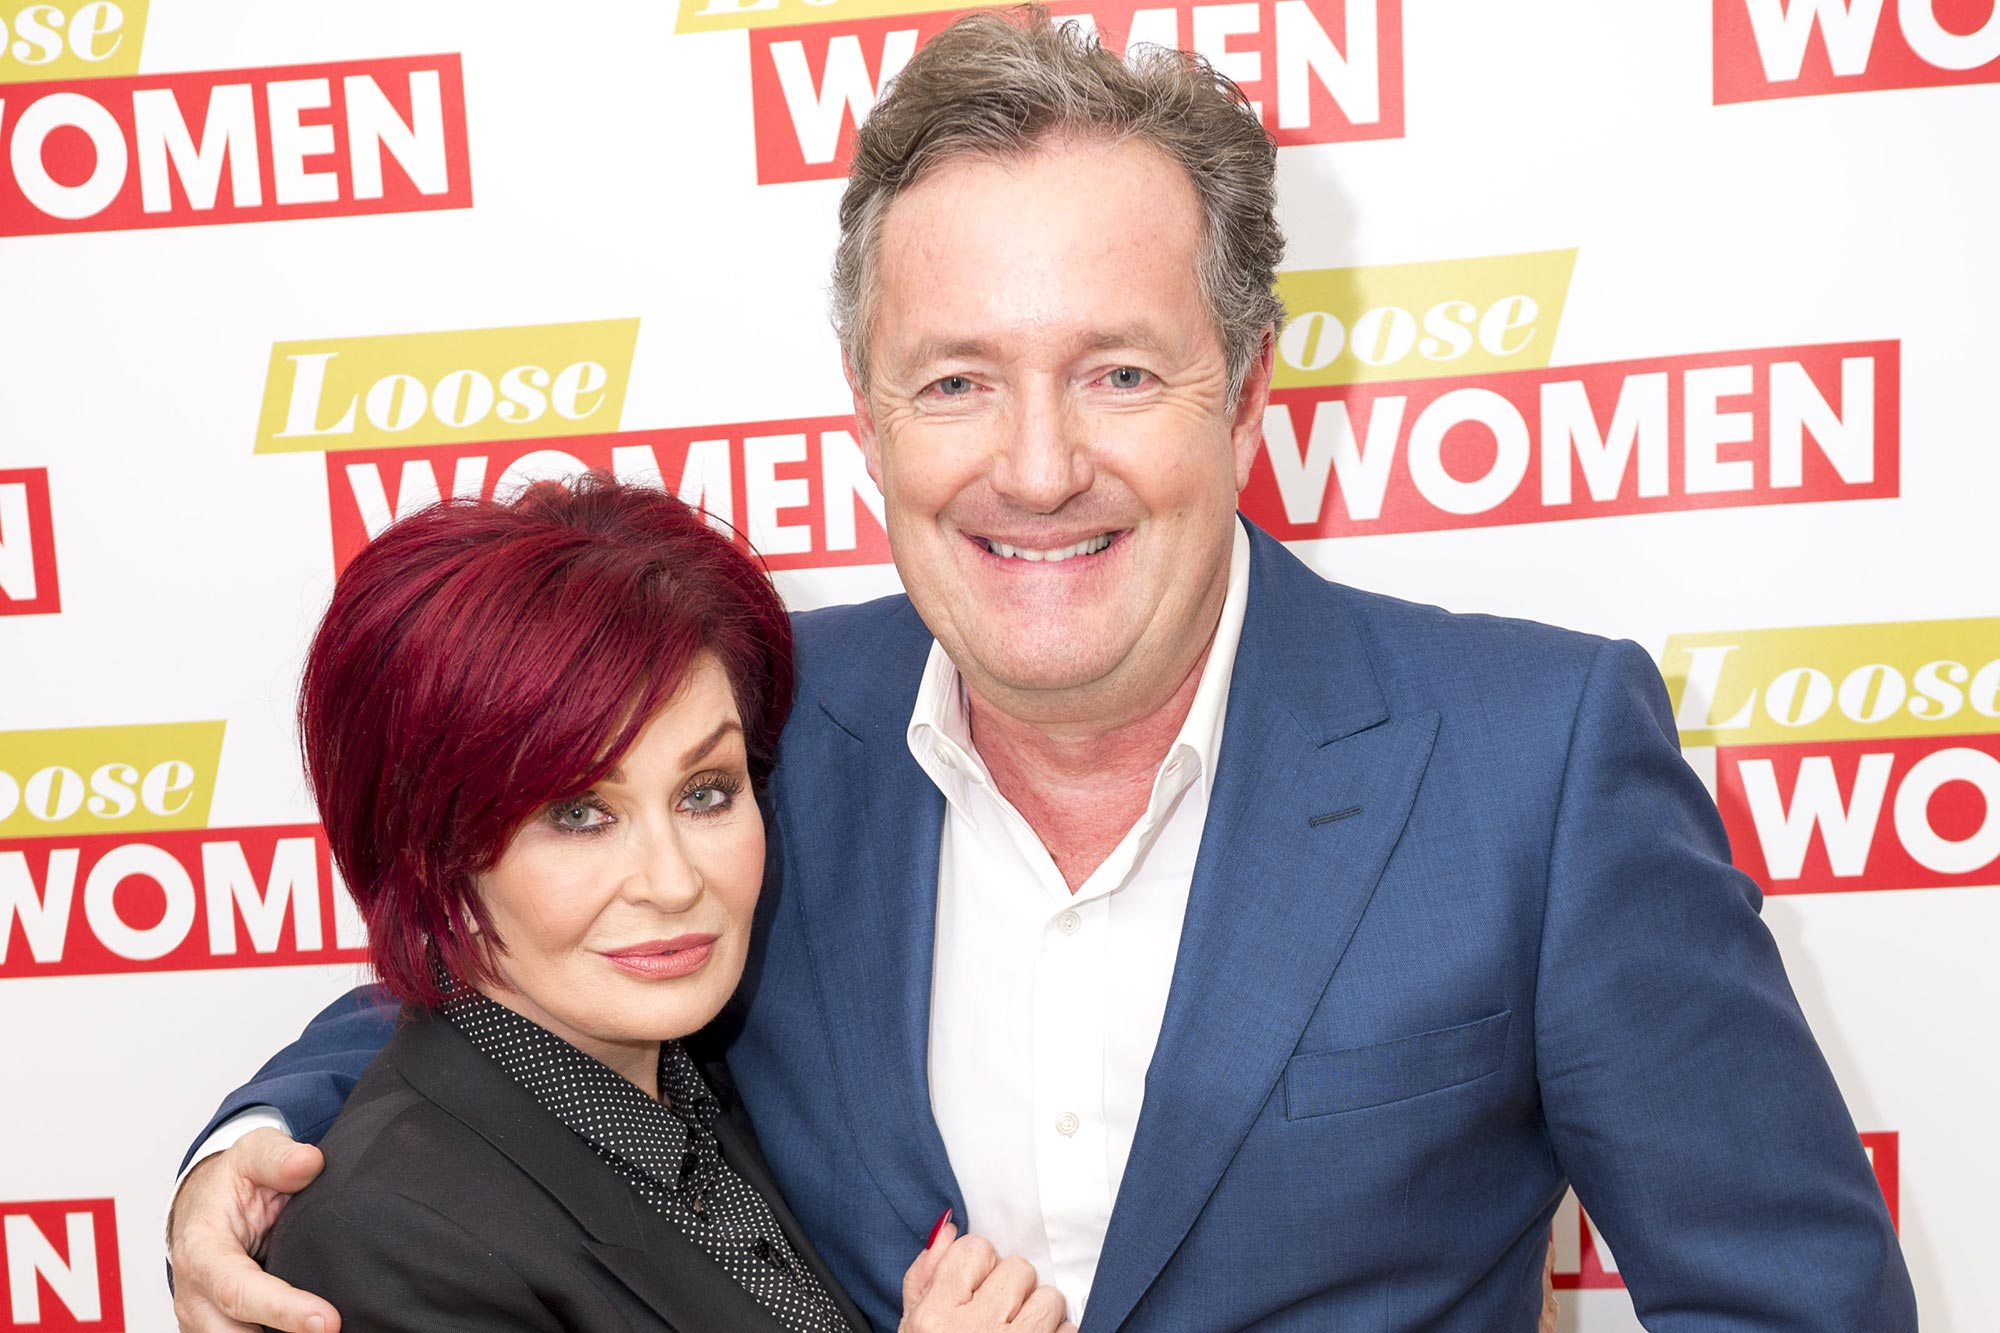 Sharon Osbourne and Piers Morgan